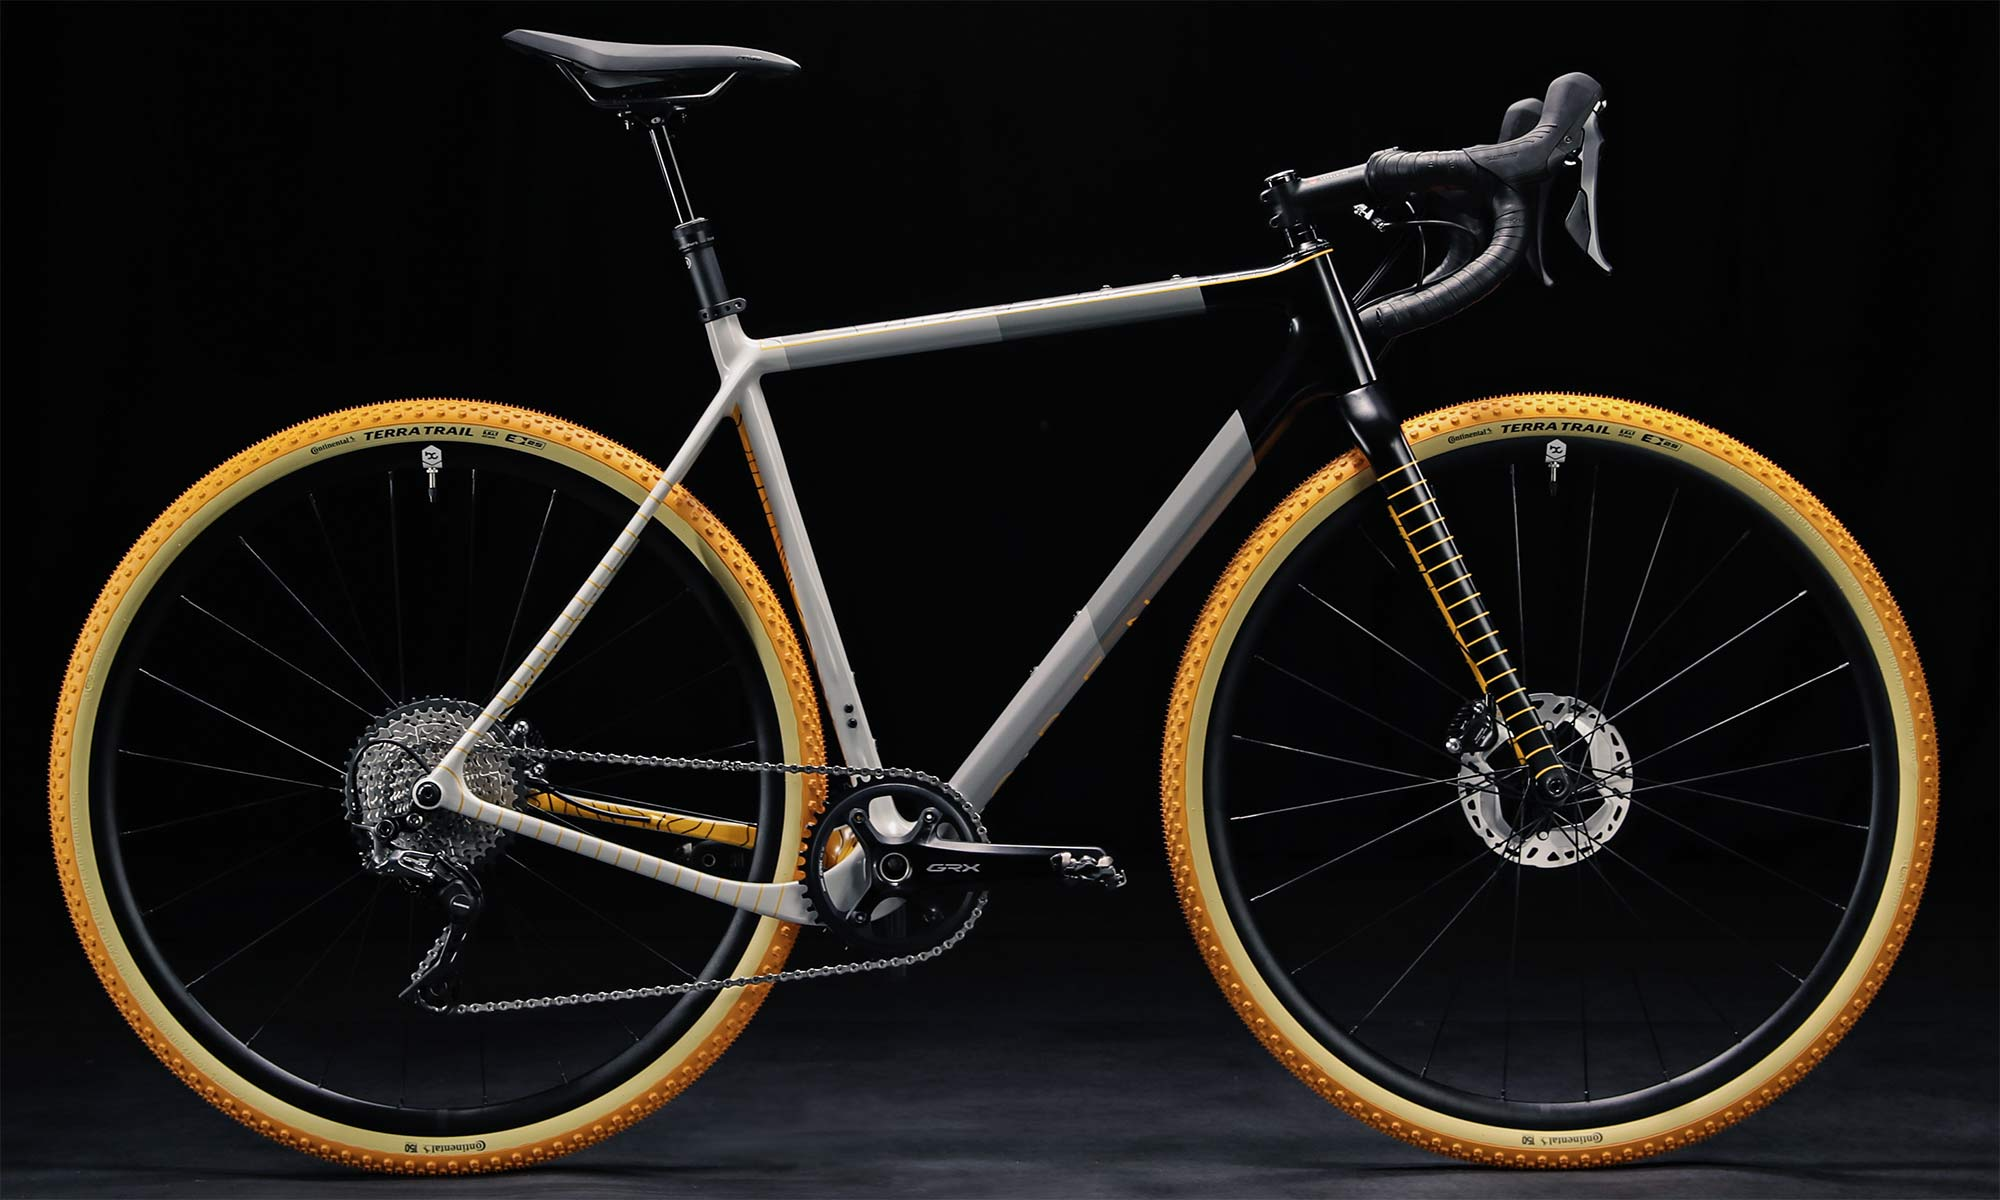 Continental 150th limited edition Terra Trail tires on a OPEN UP gravel bike, complete